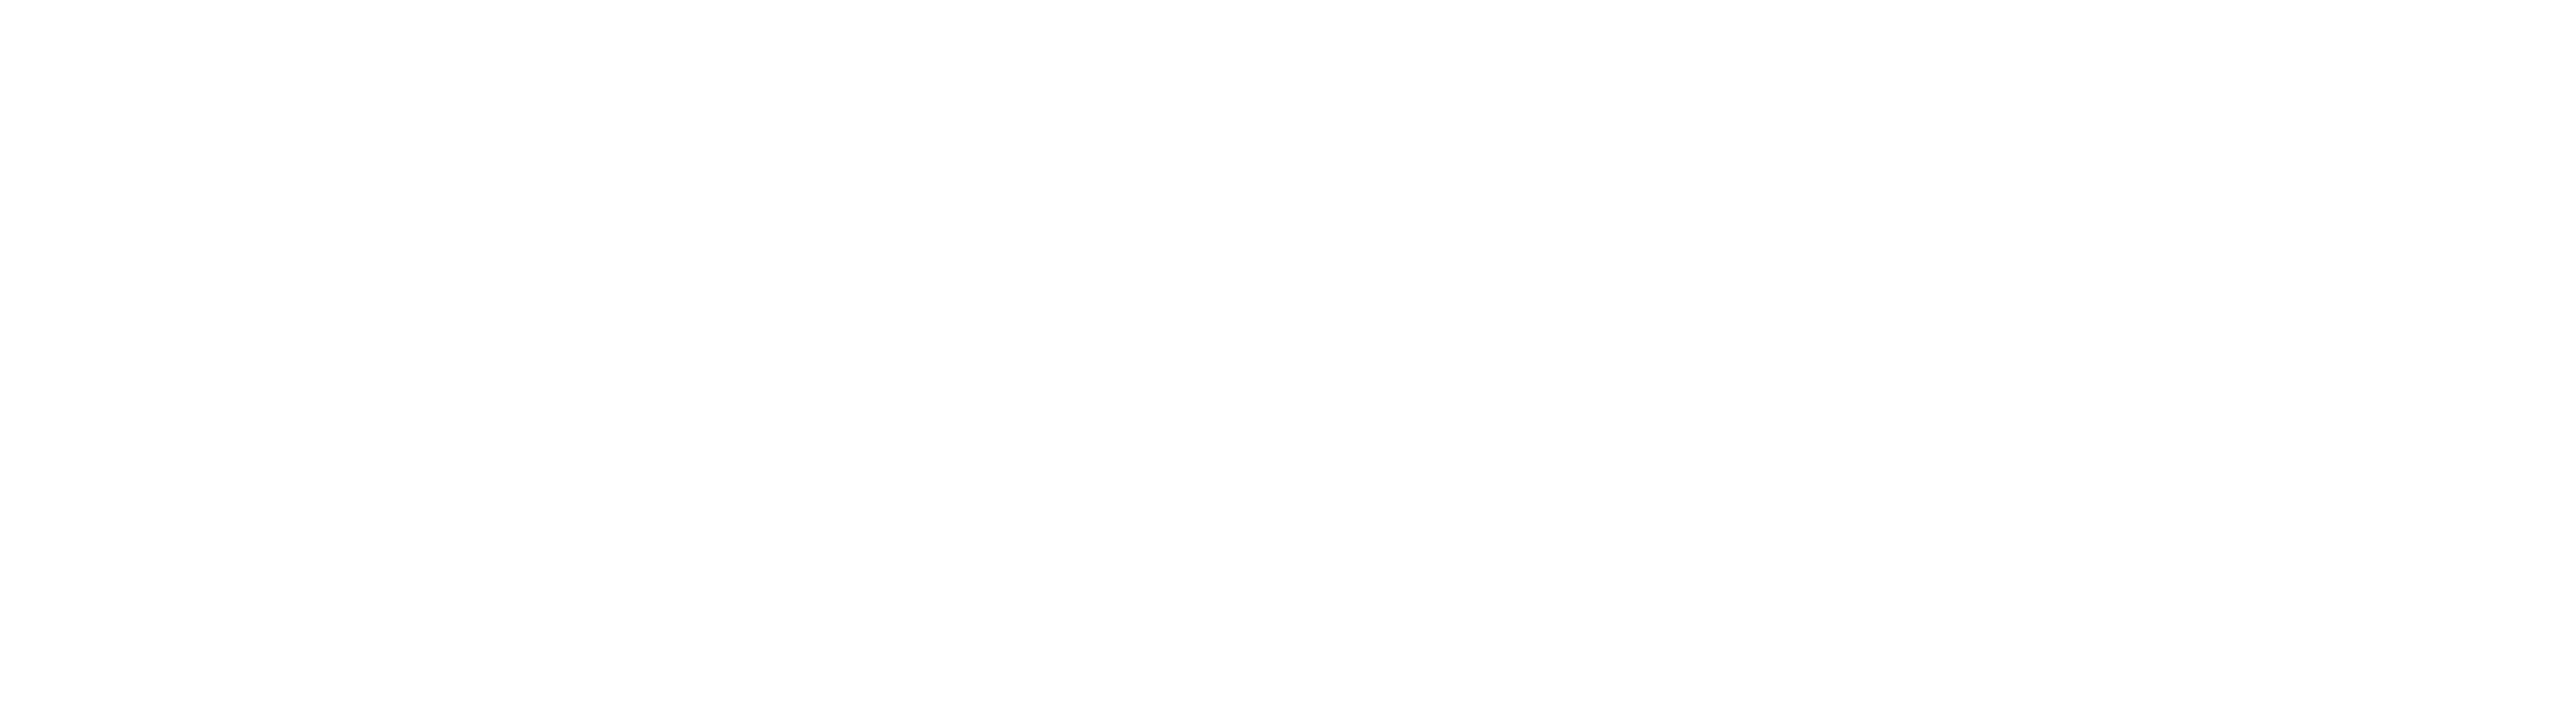 Changes Salon